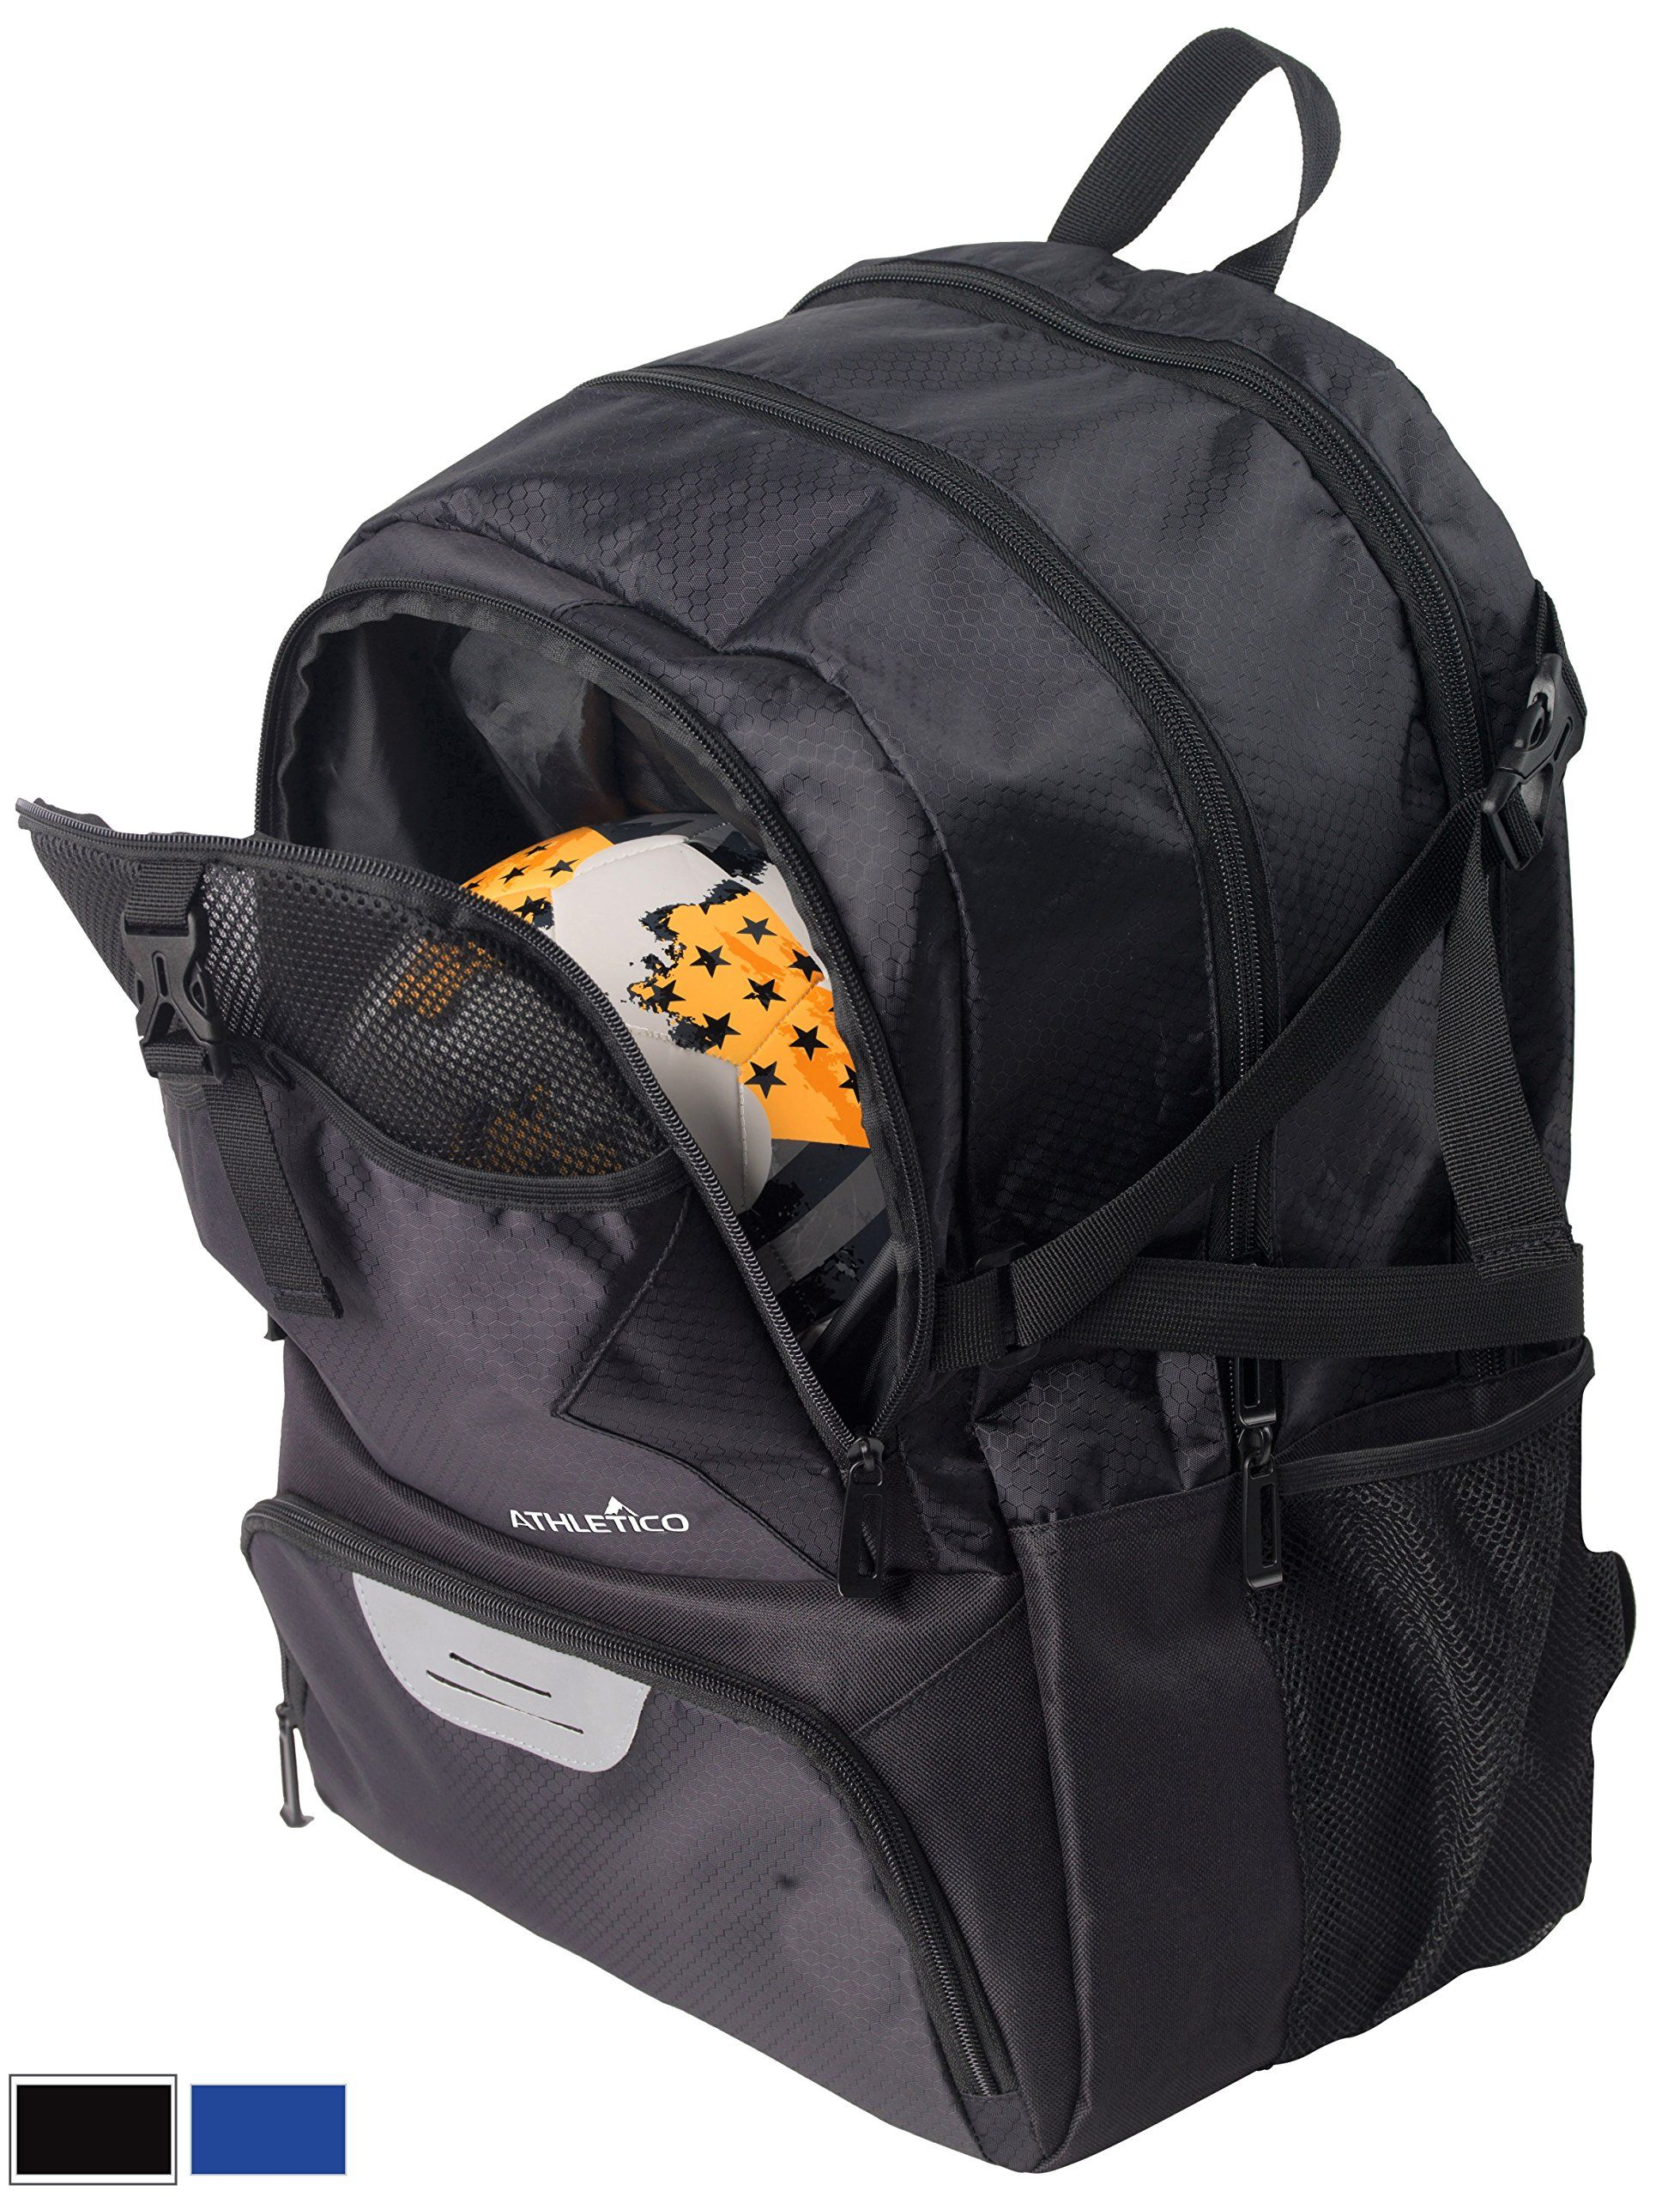 Athletico National Soccer Bag Backpack For Basketball Football Includes Separate Cleat And Ball Holder Youth Kids S Boys